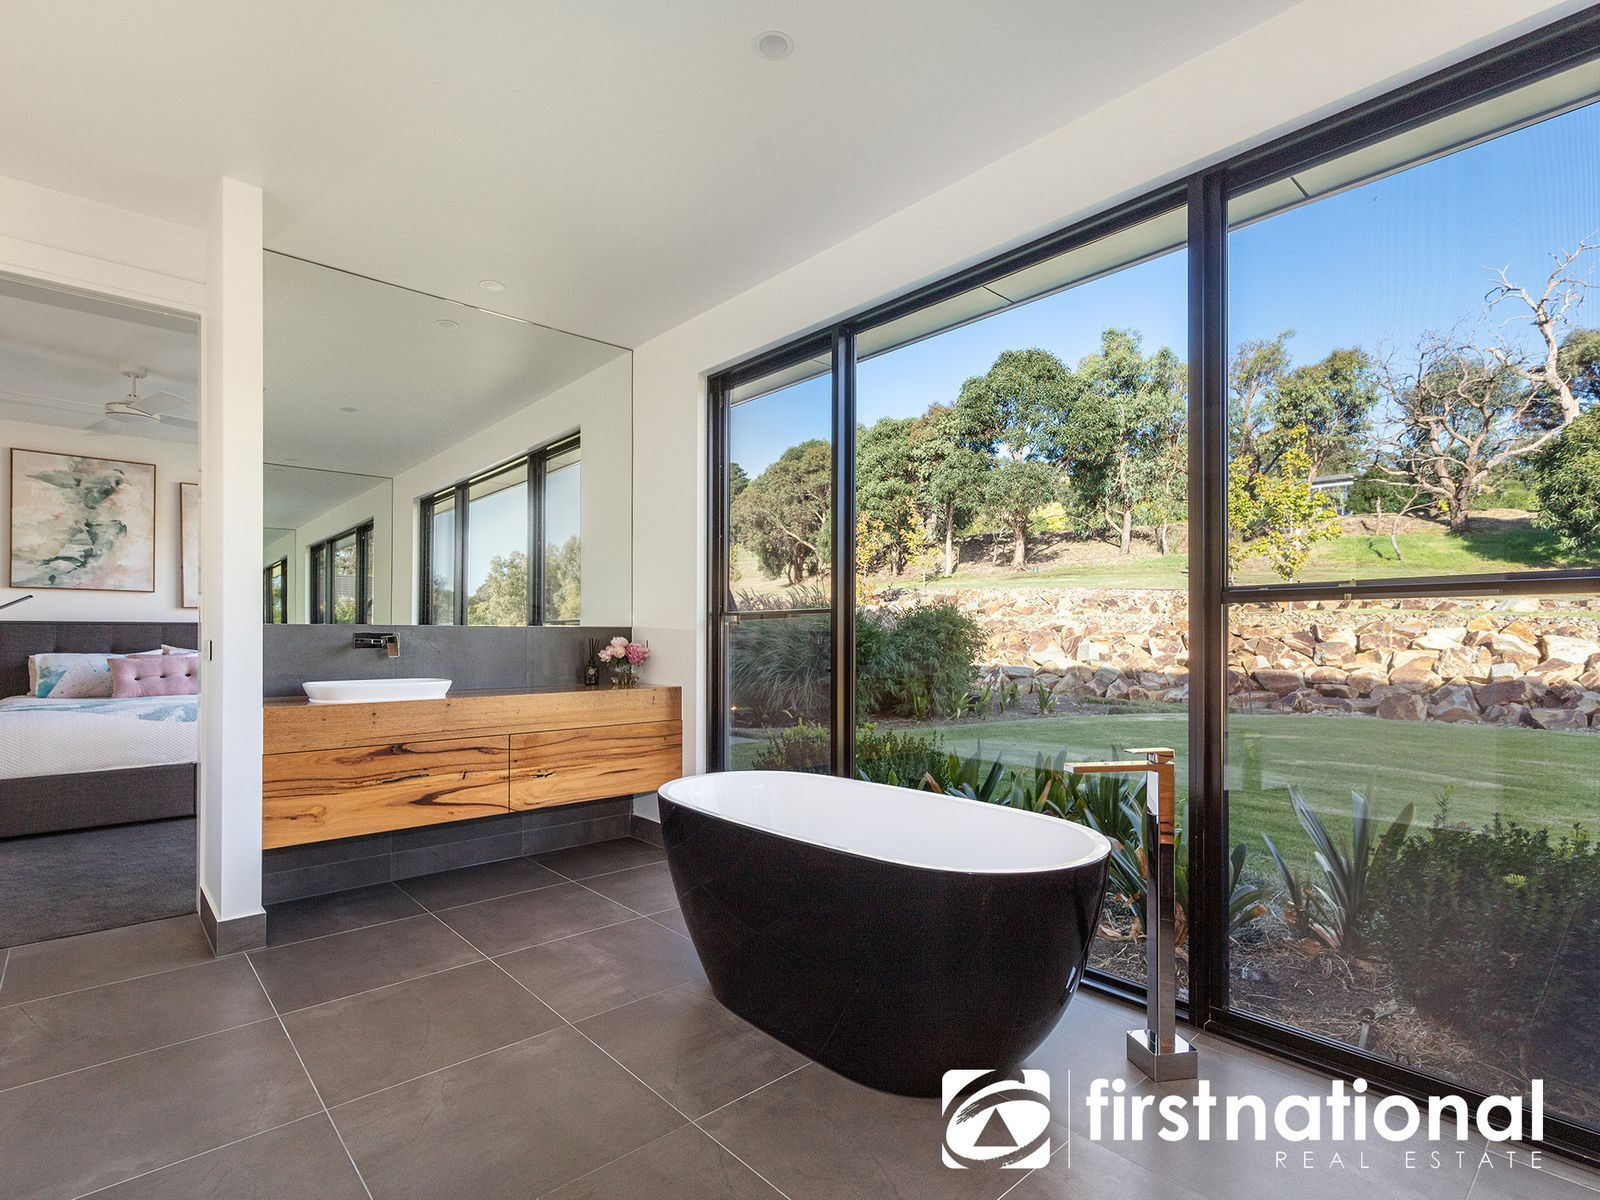 Master bedroom with adjoining ensuite and freestanding bath